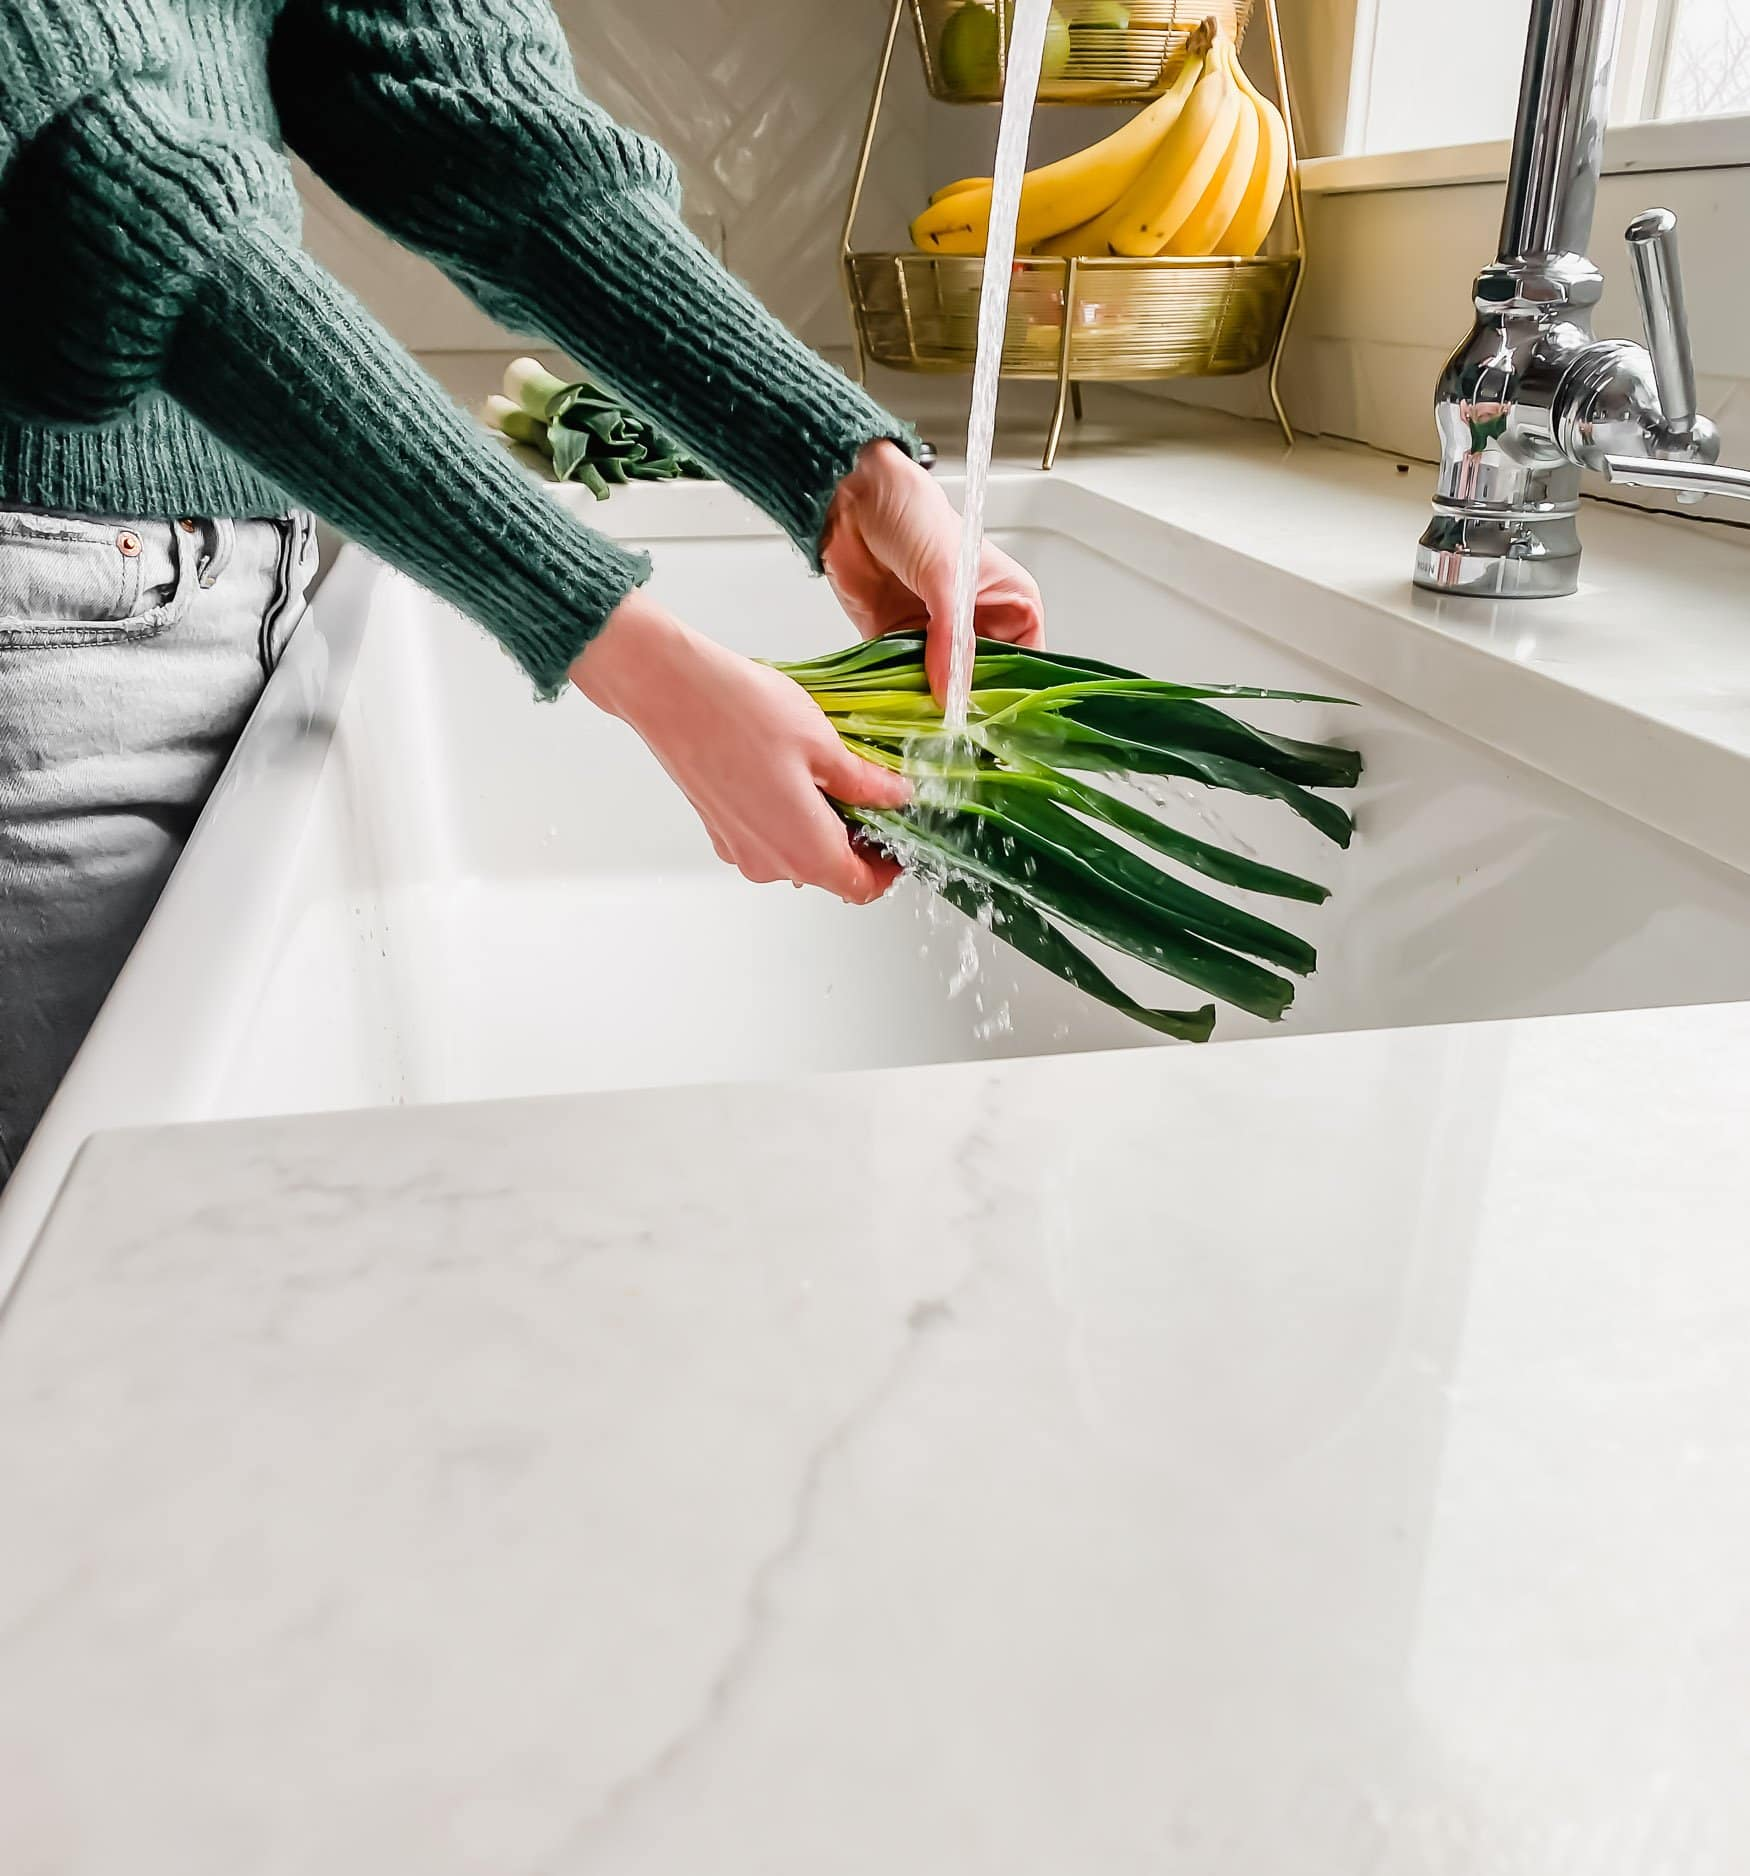 A photo of a womans hands cleaning leeks under a running faucet